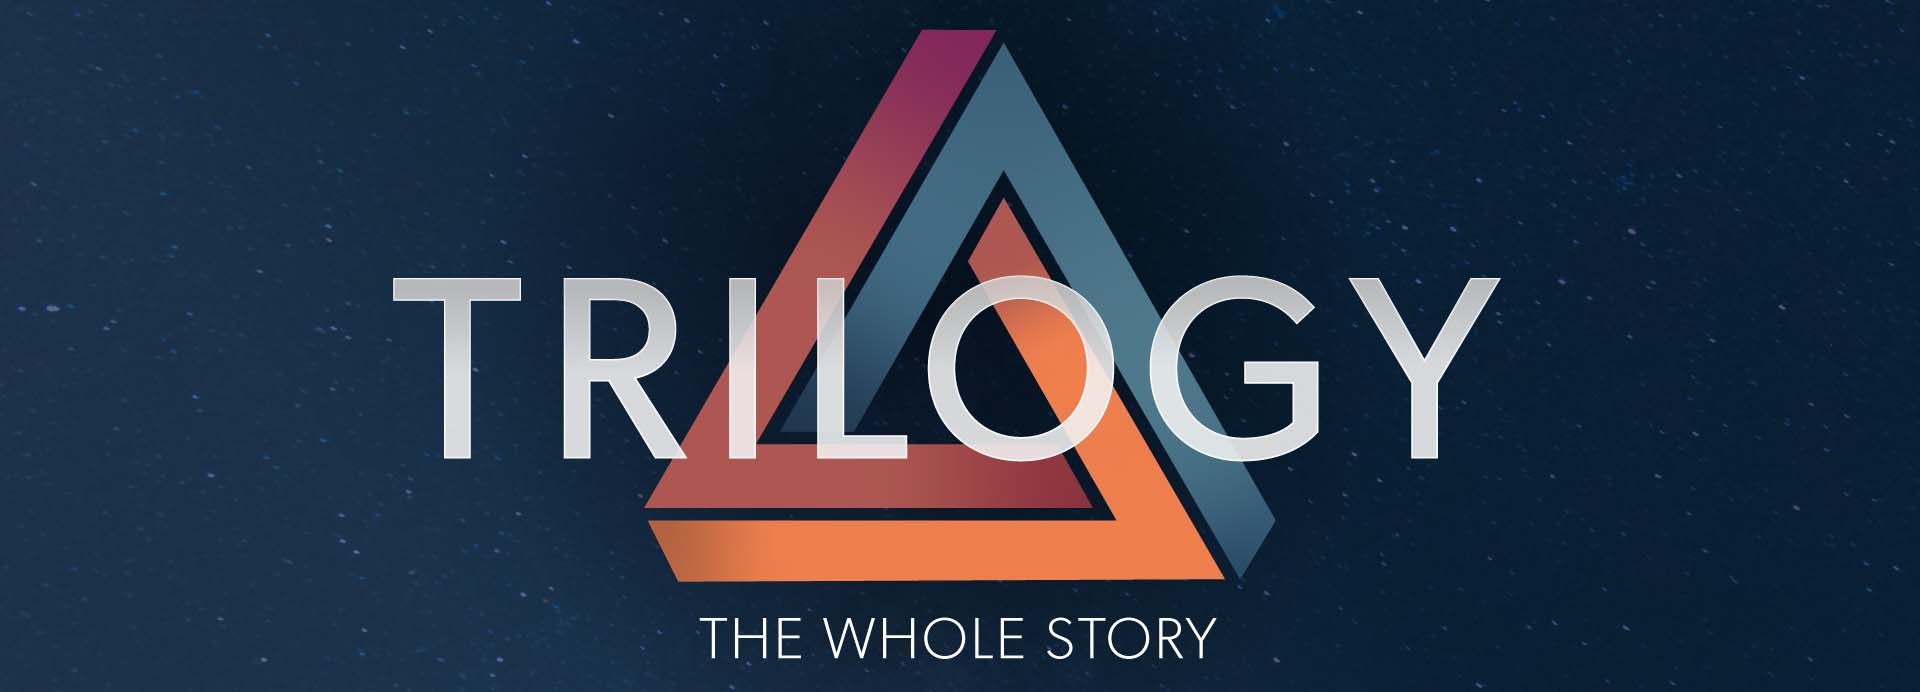 Trilogy – The Whole Story